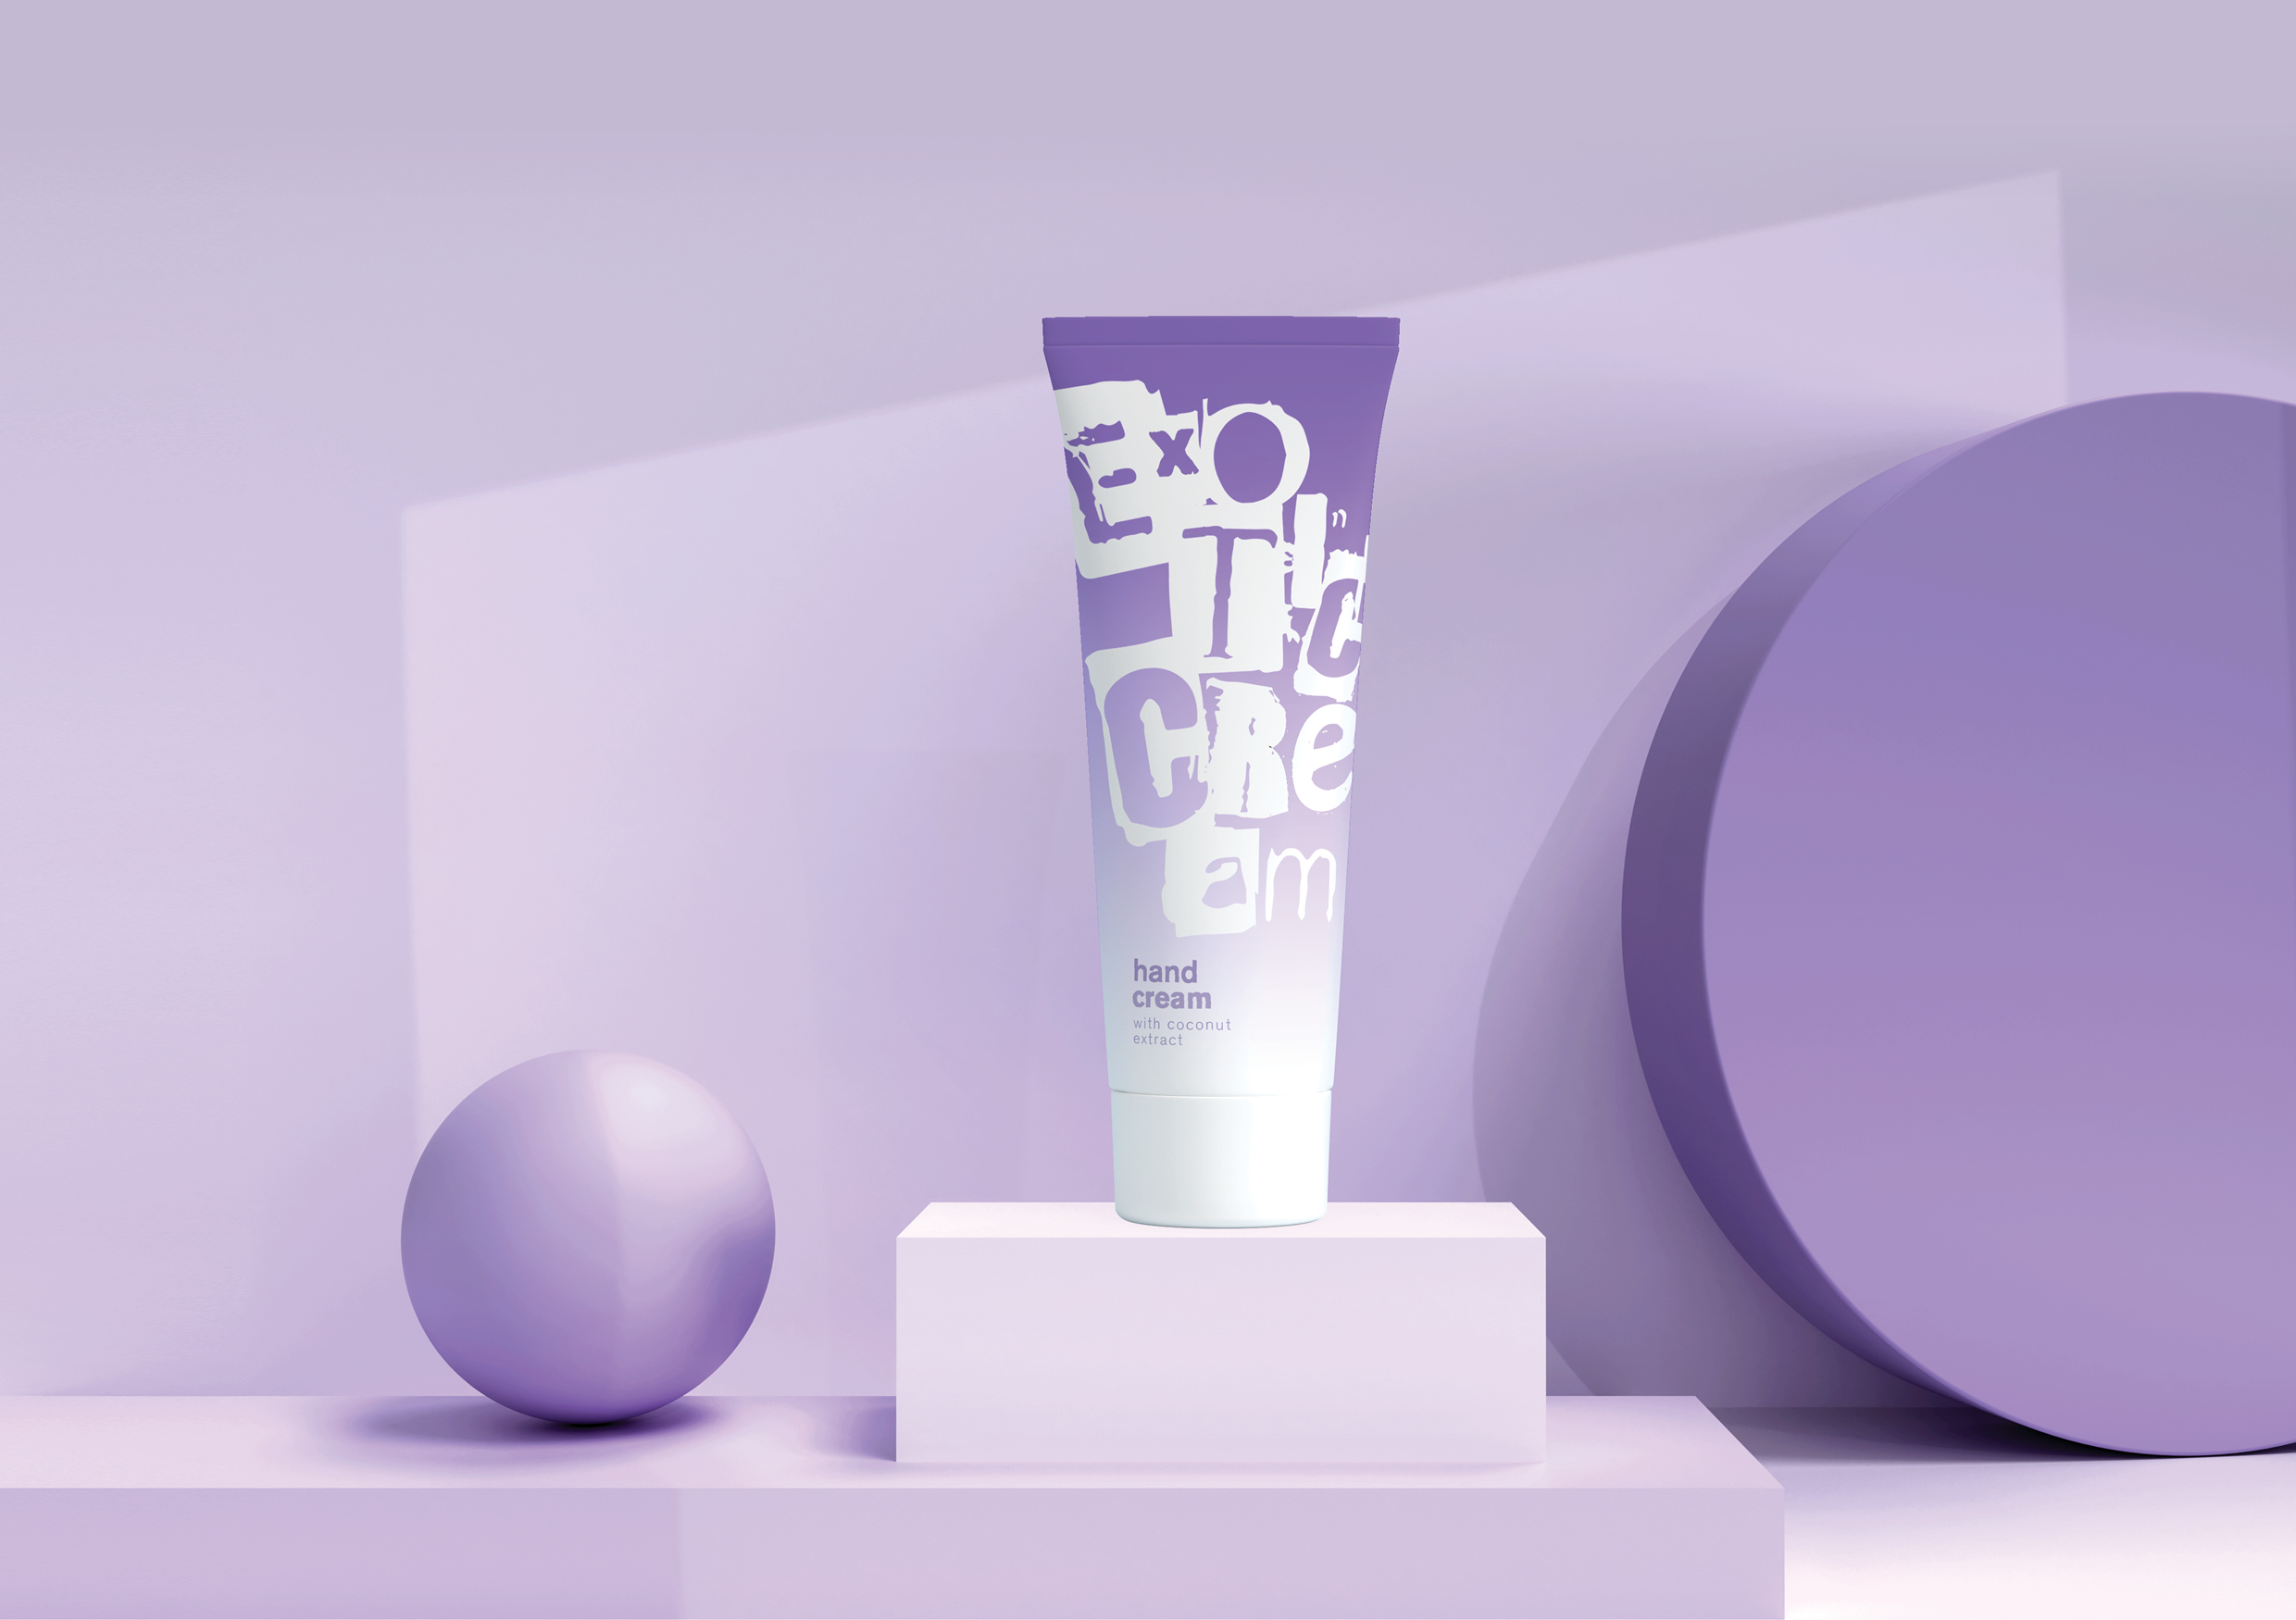 Exotic Shampoo Concept Packaging Design by Tanya Dunaeva